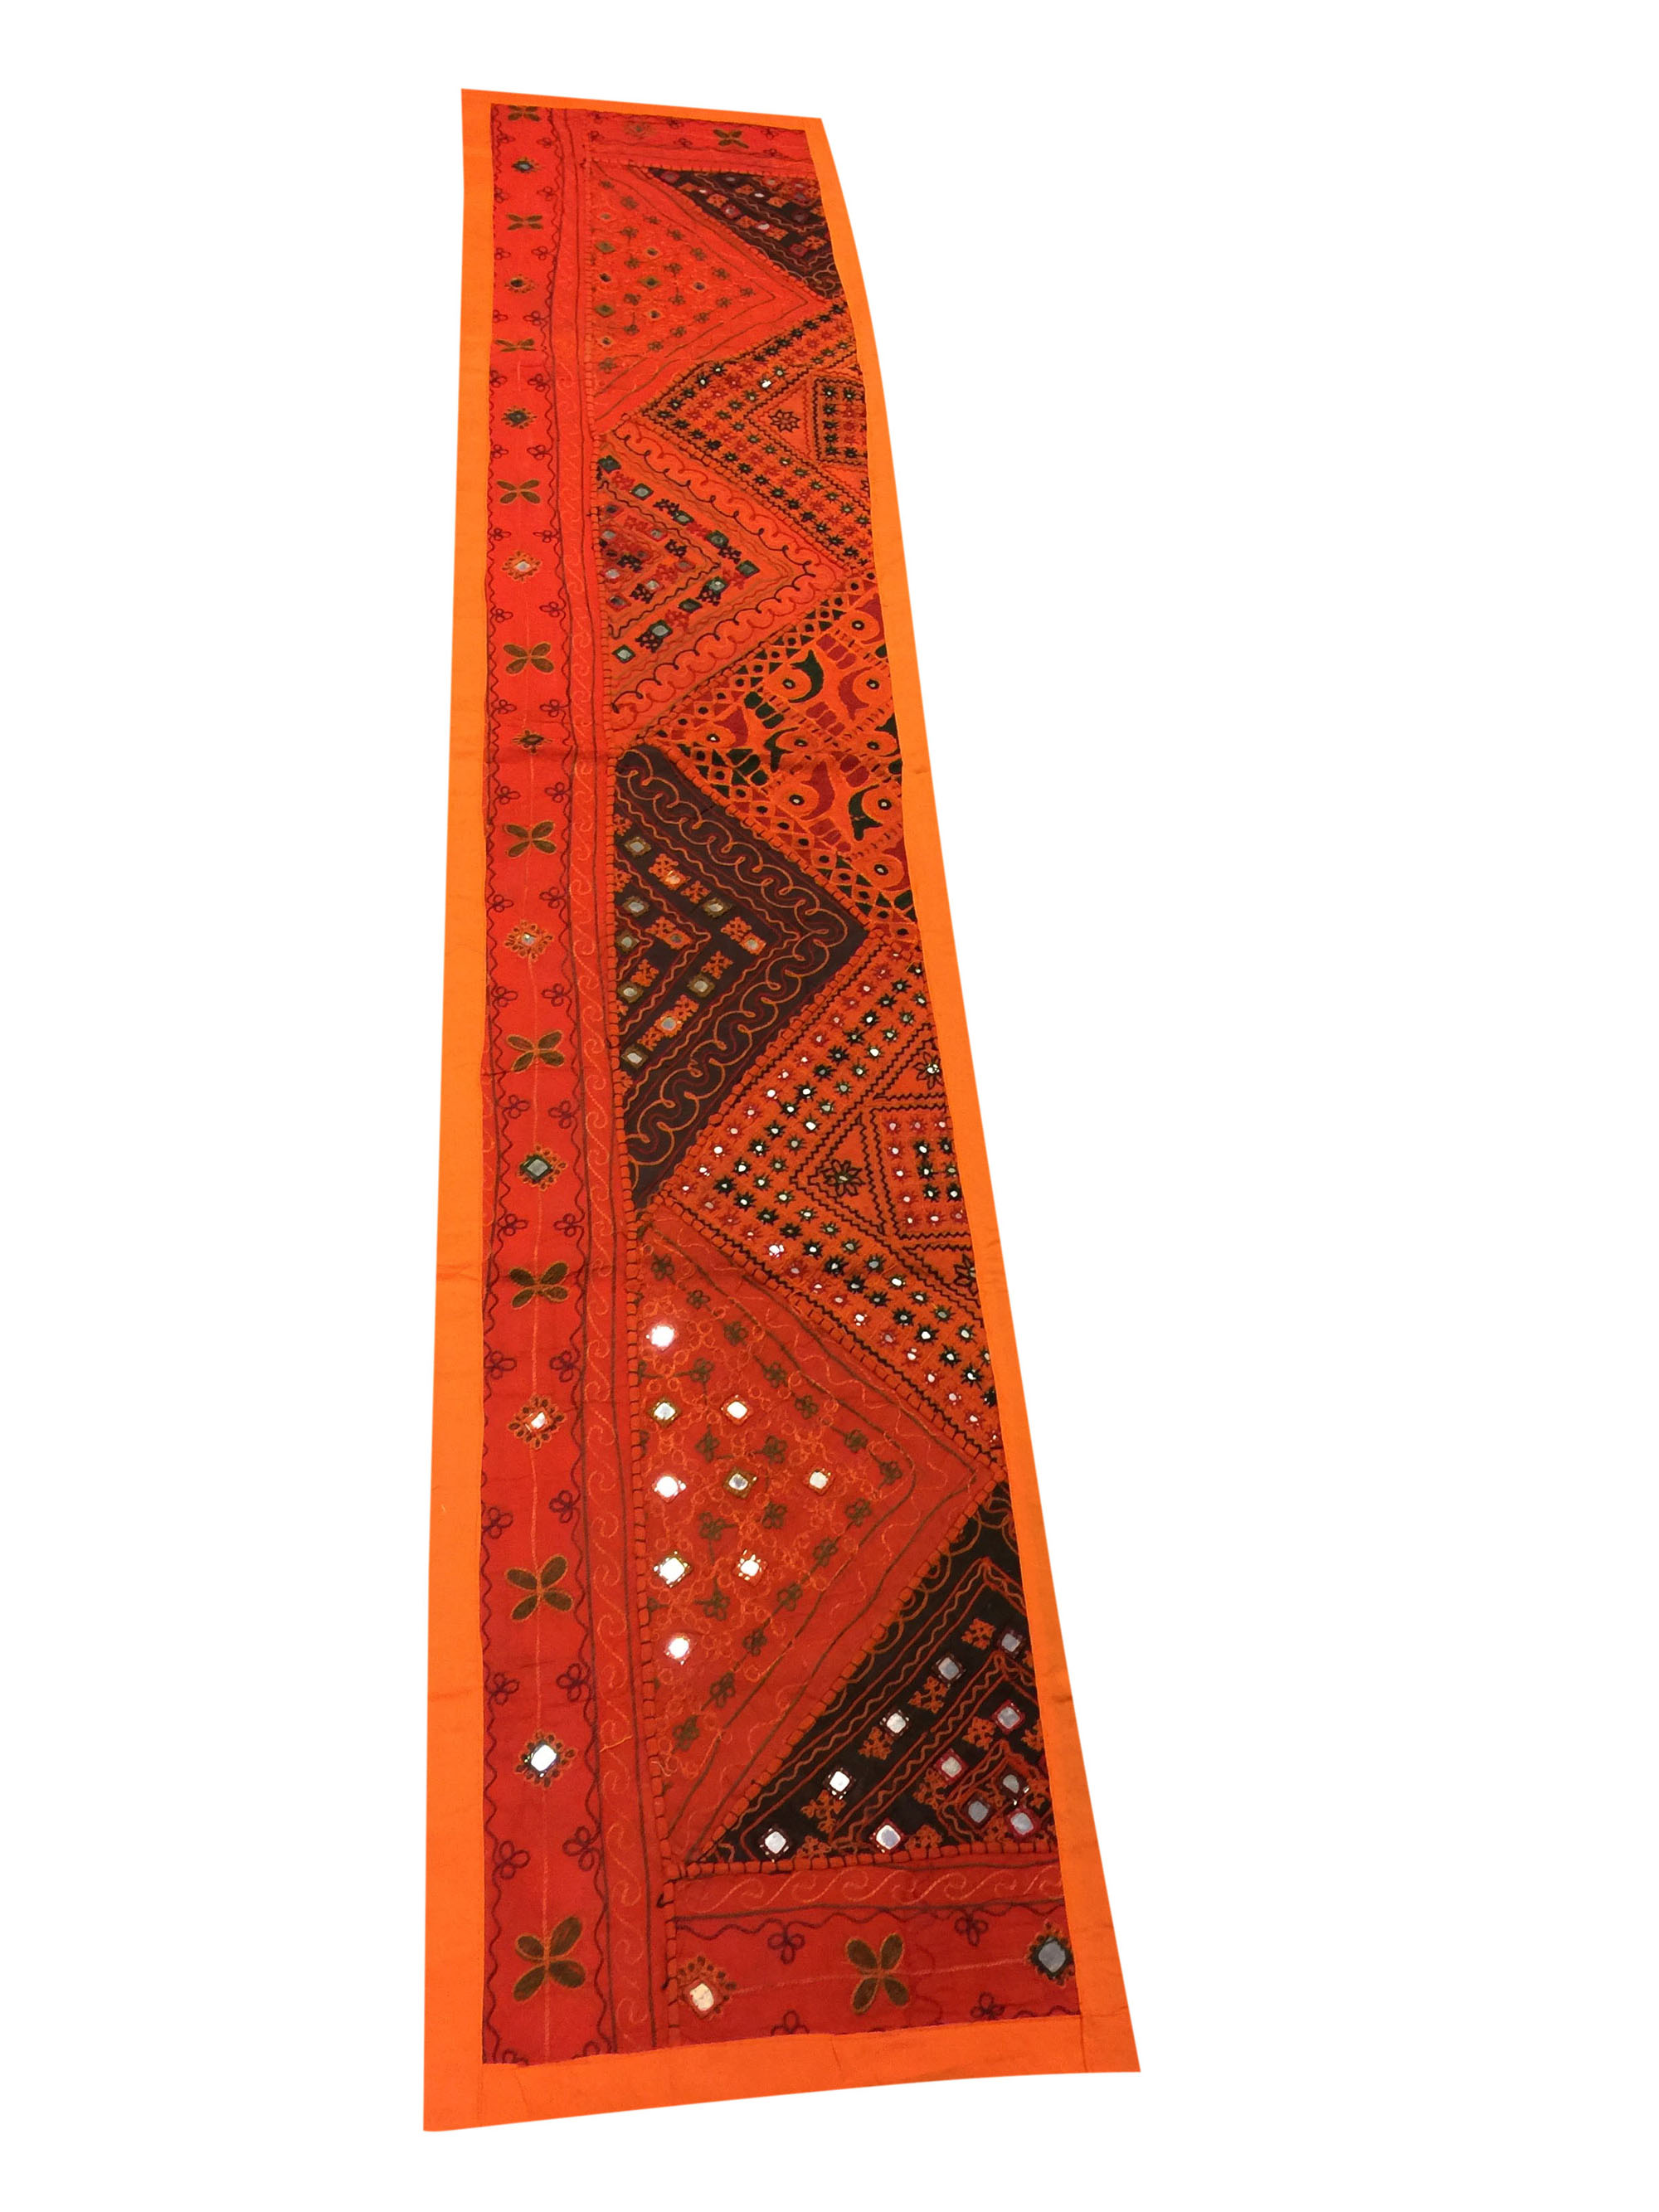 Mogul Table Runner Orange Mirror Work Embroidered Tapestry Bohemian Interior